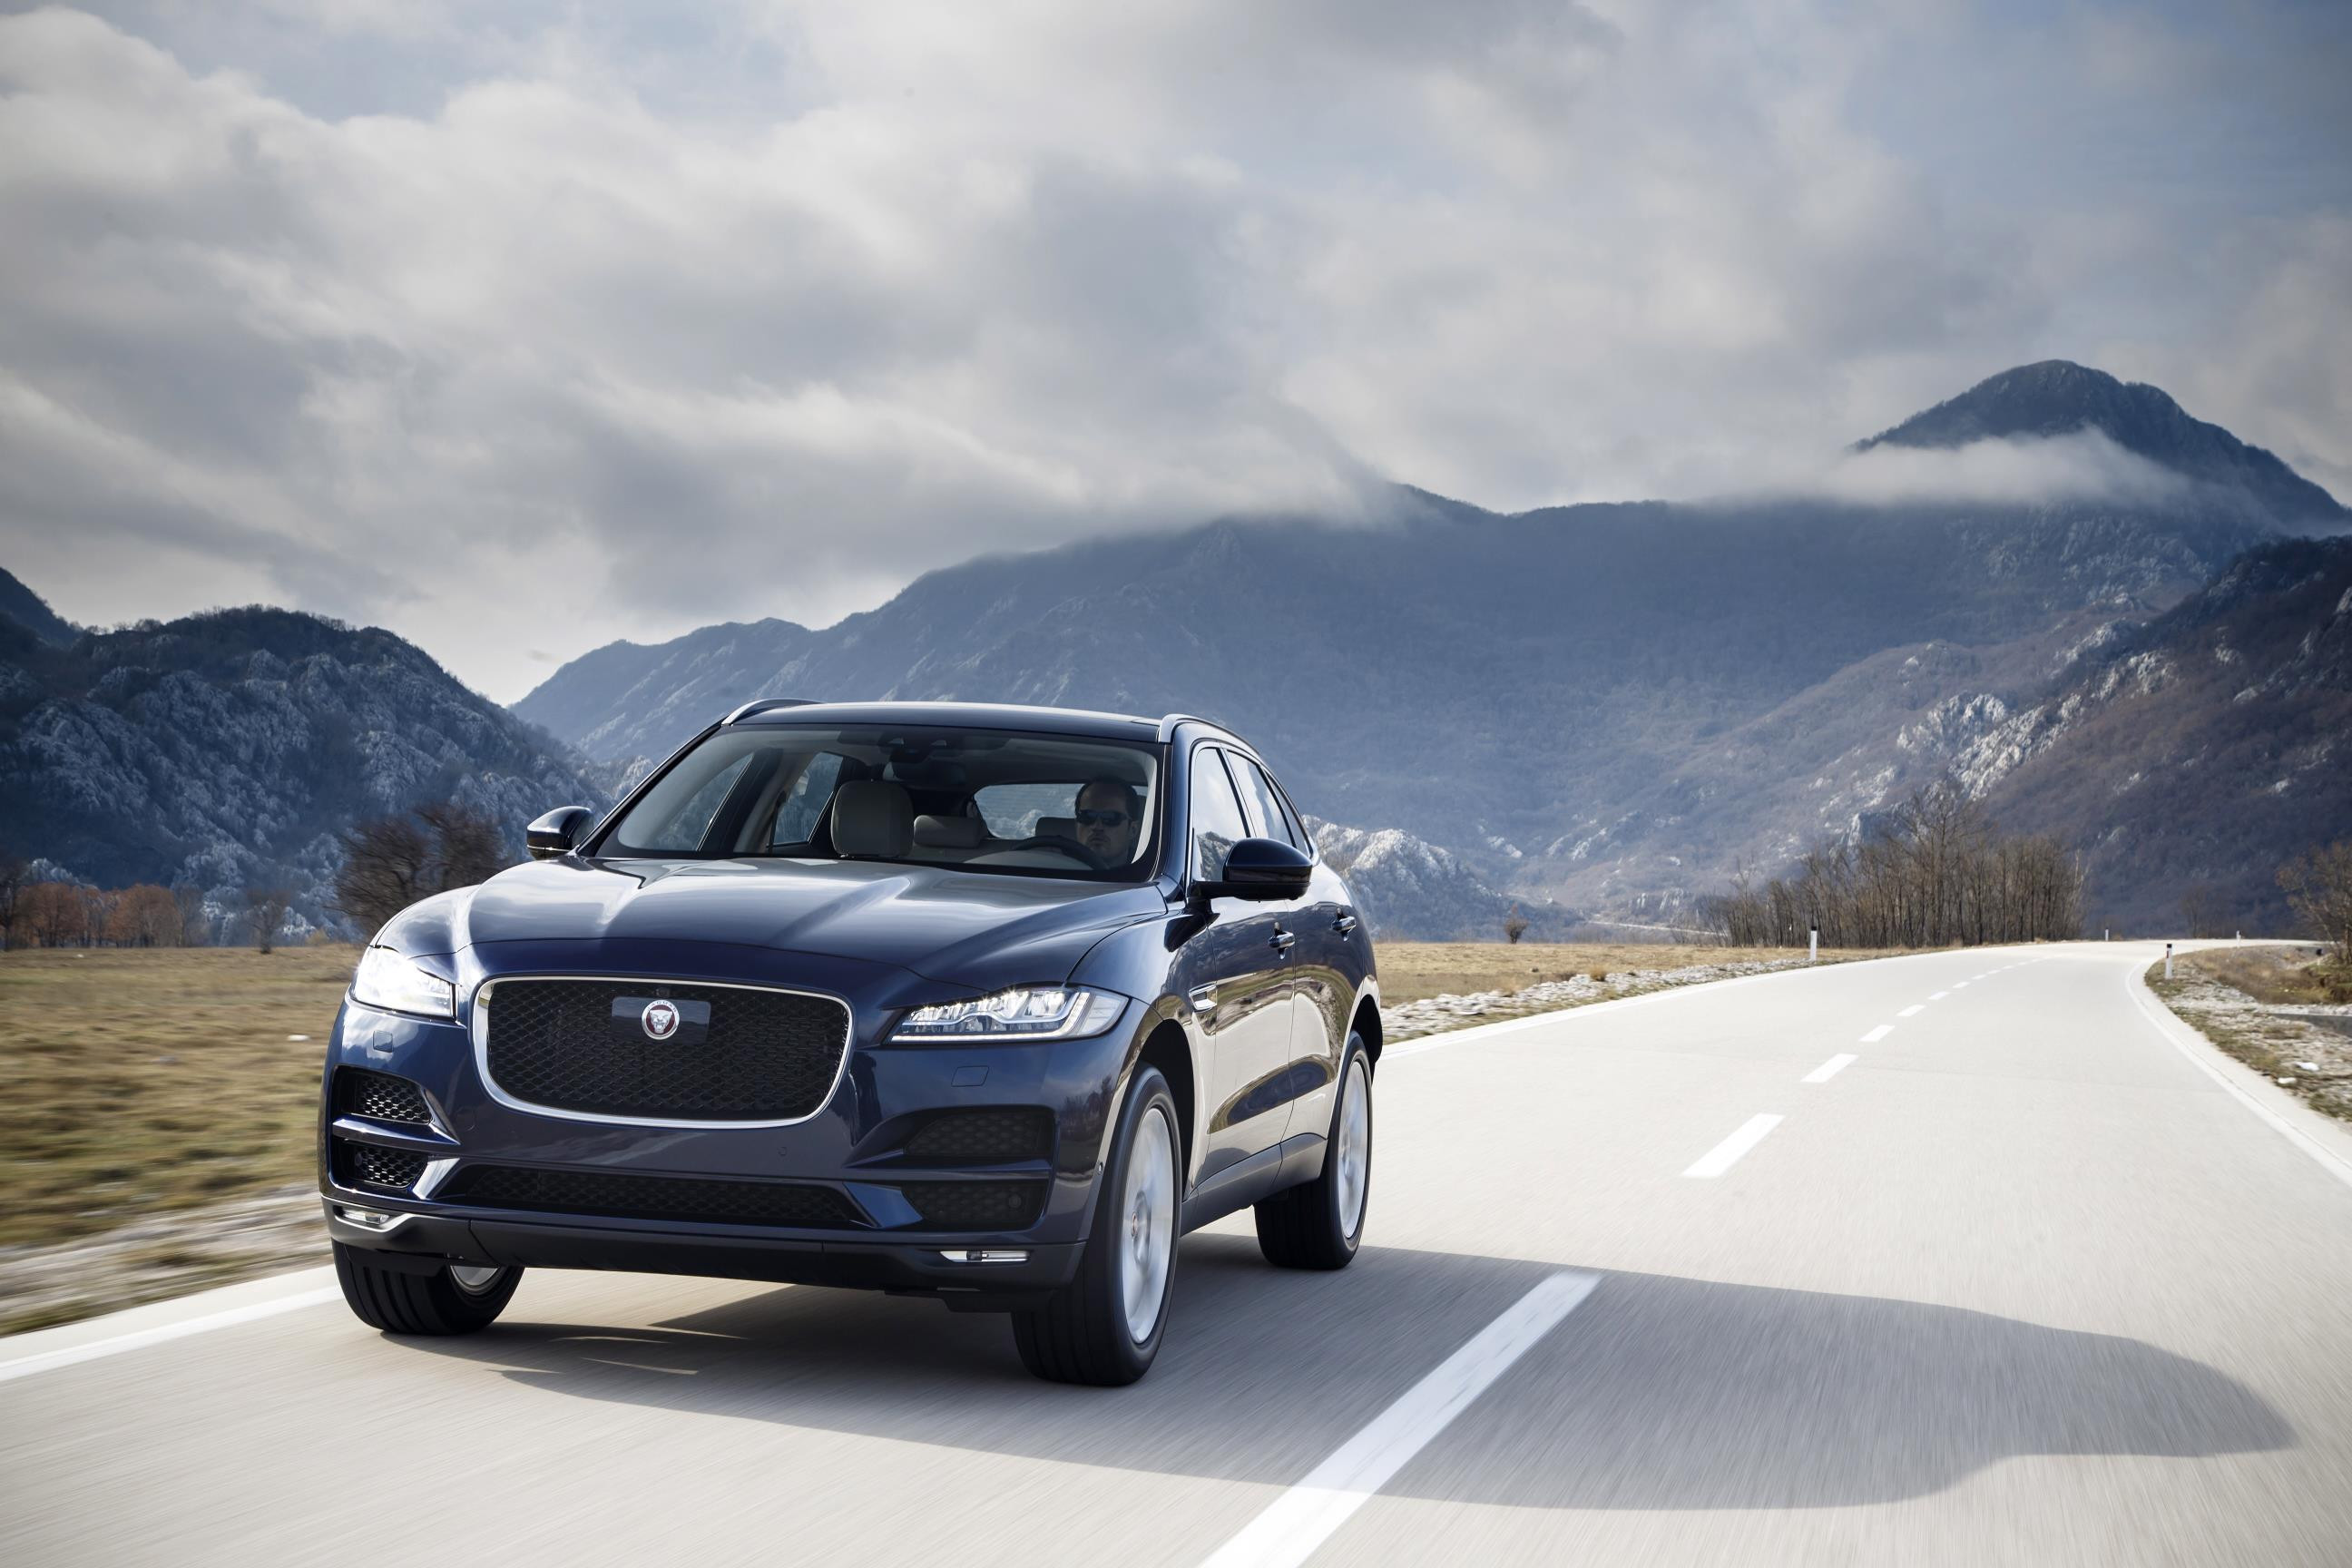 Dark blue Jaguar F-Pace driving towards you on an isolated road